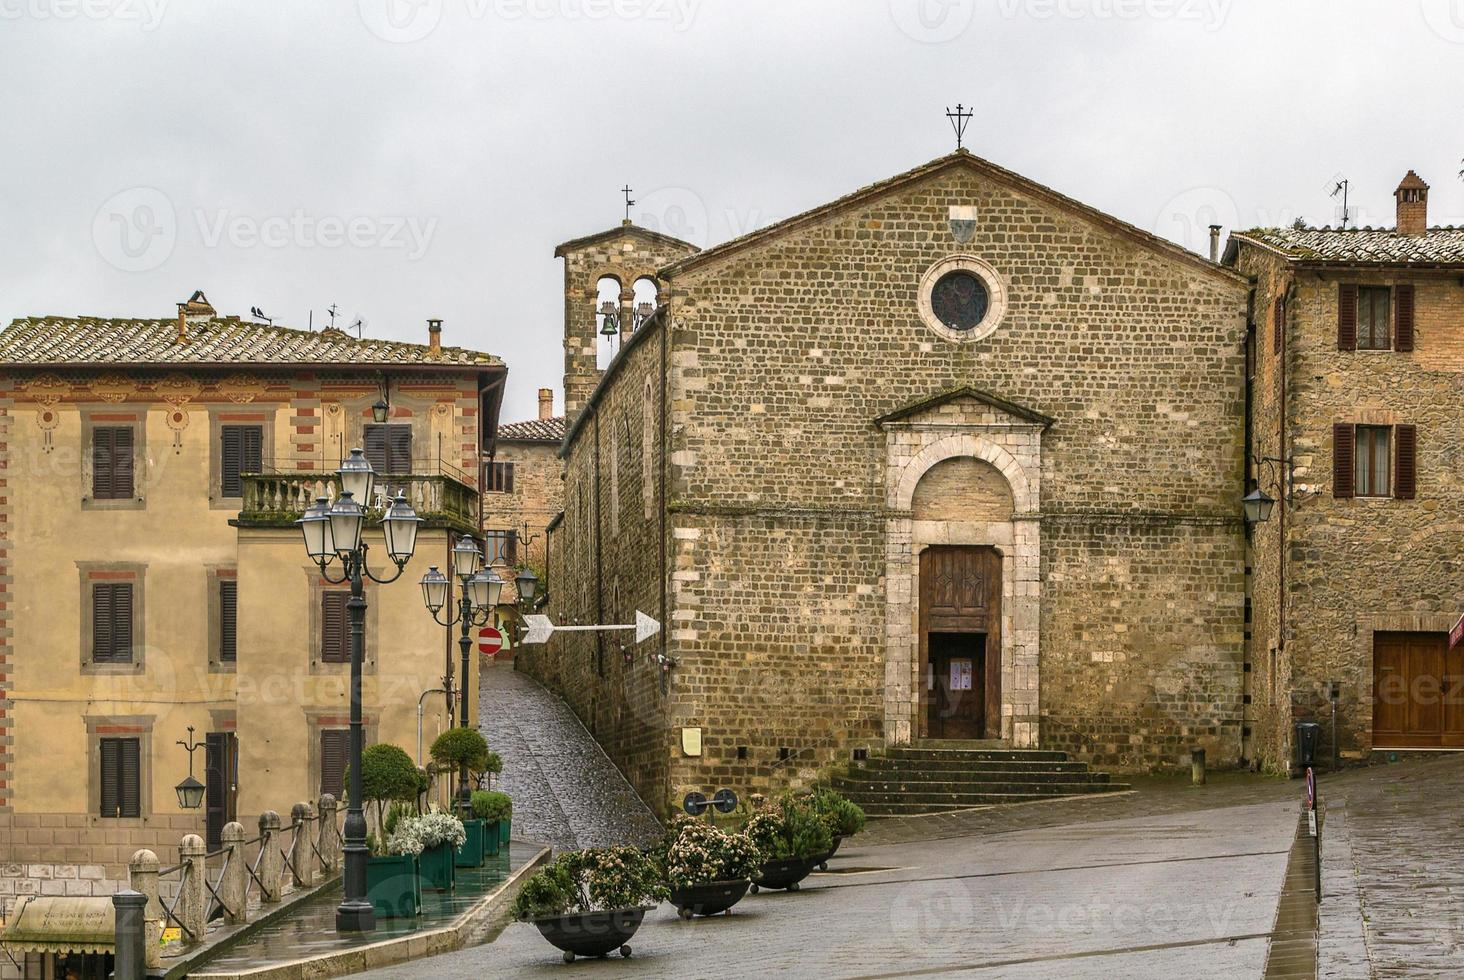 Church of Sant Egidio, Montalcino, Italy photo